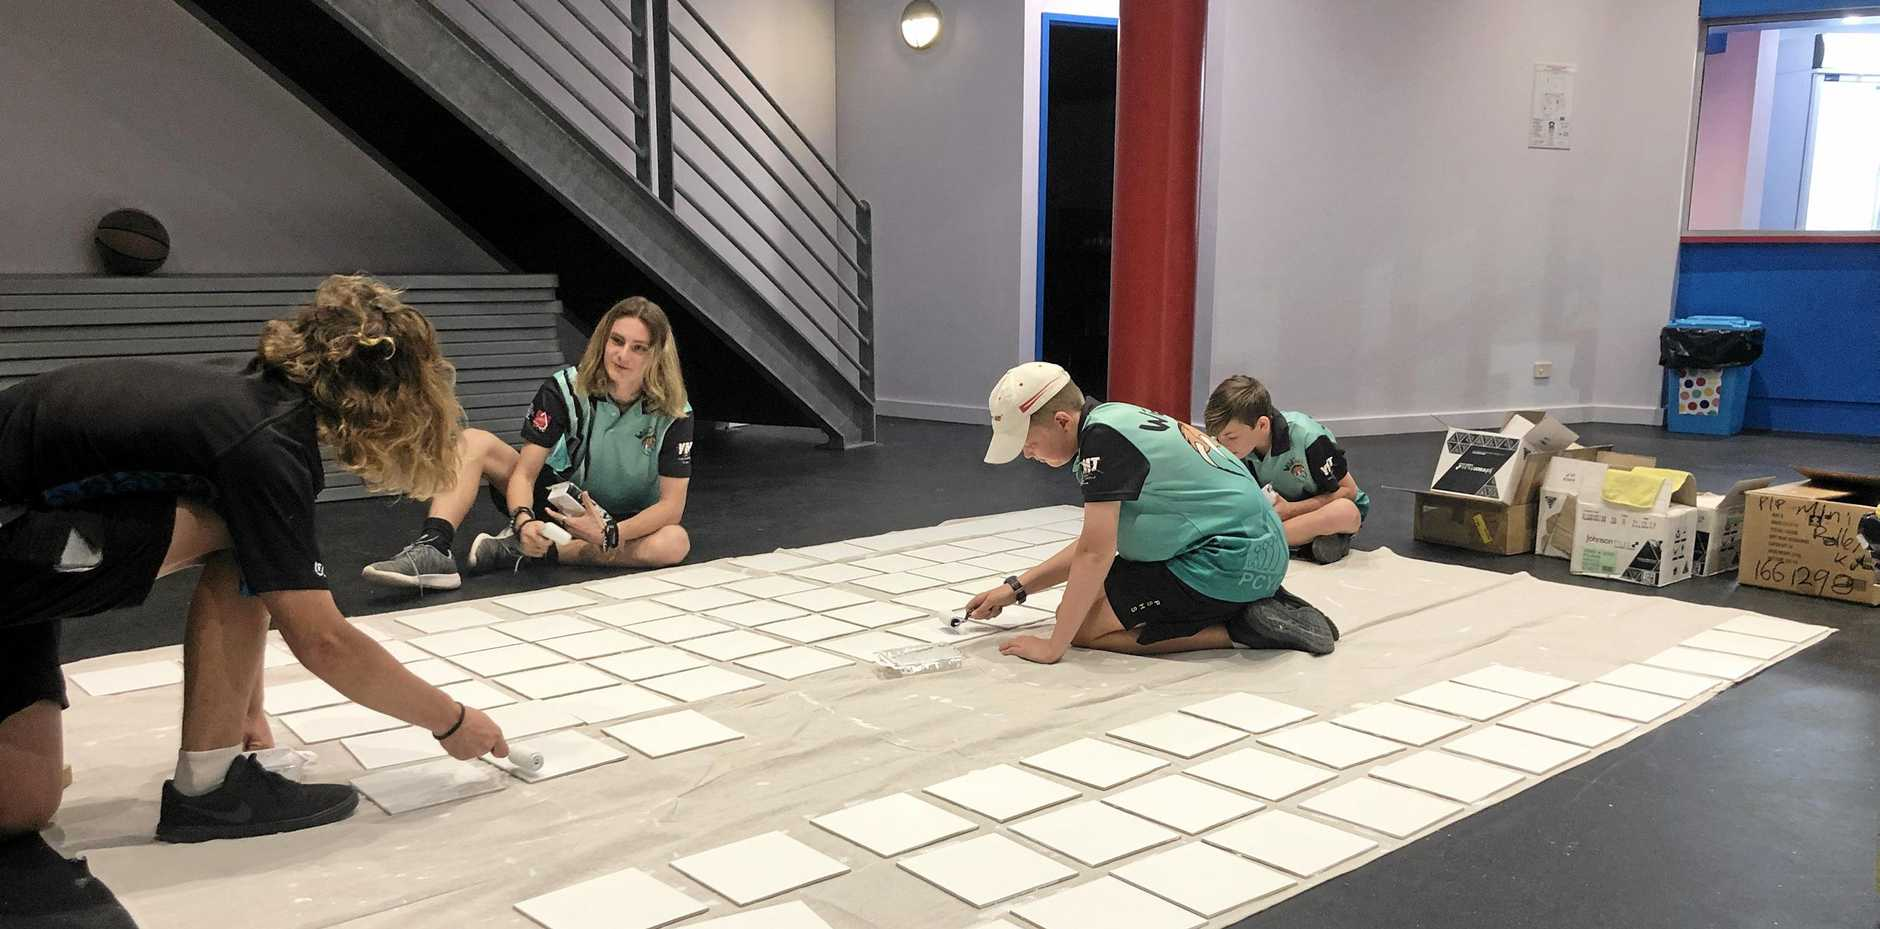 LENDING A HAND: Whitsunday PCYC youth team members Riley Petterson, Rhett Hill, Jesse Frisch and Phoenix Hill help prepare tiles for the PCYC Helping Hands wall.